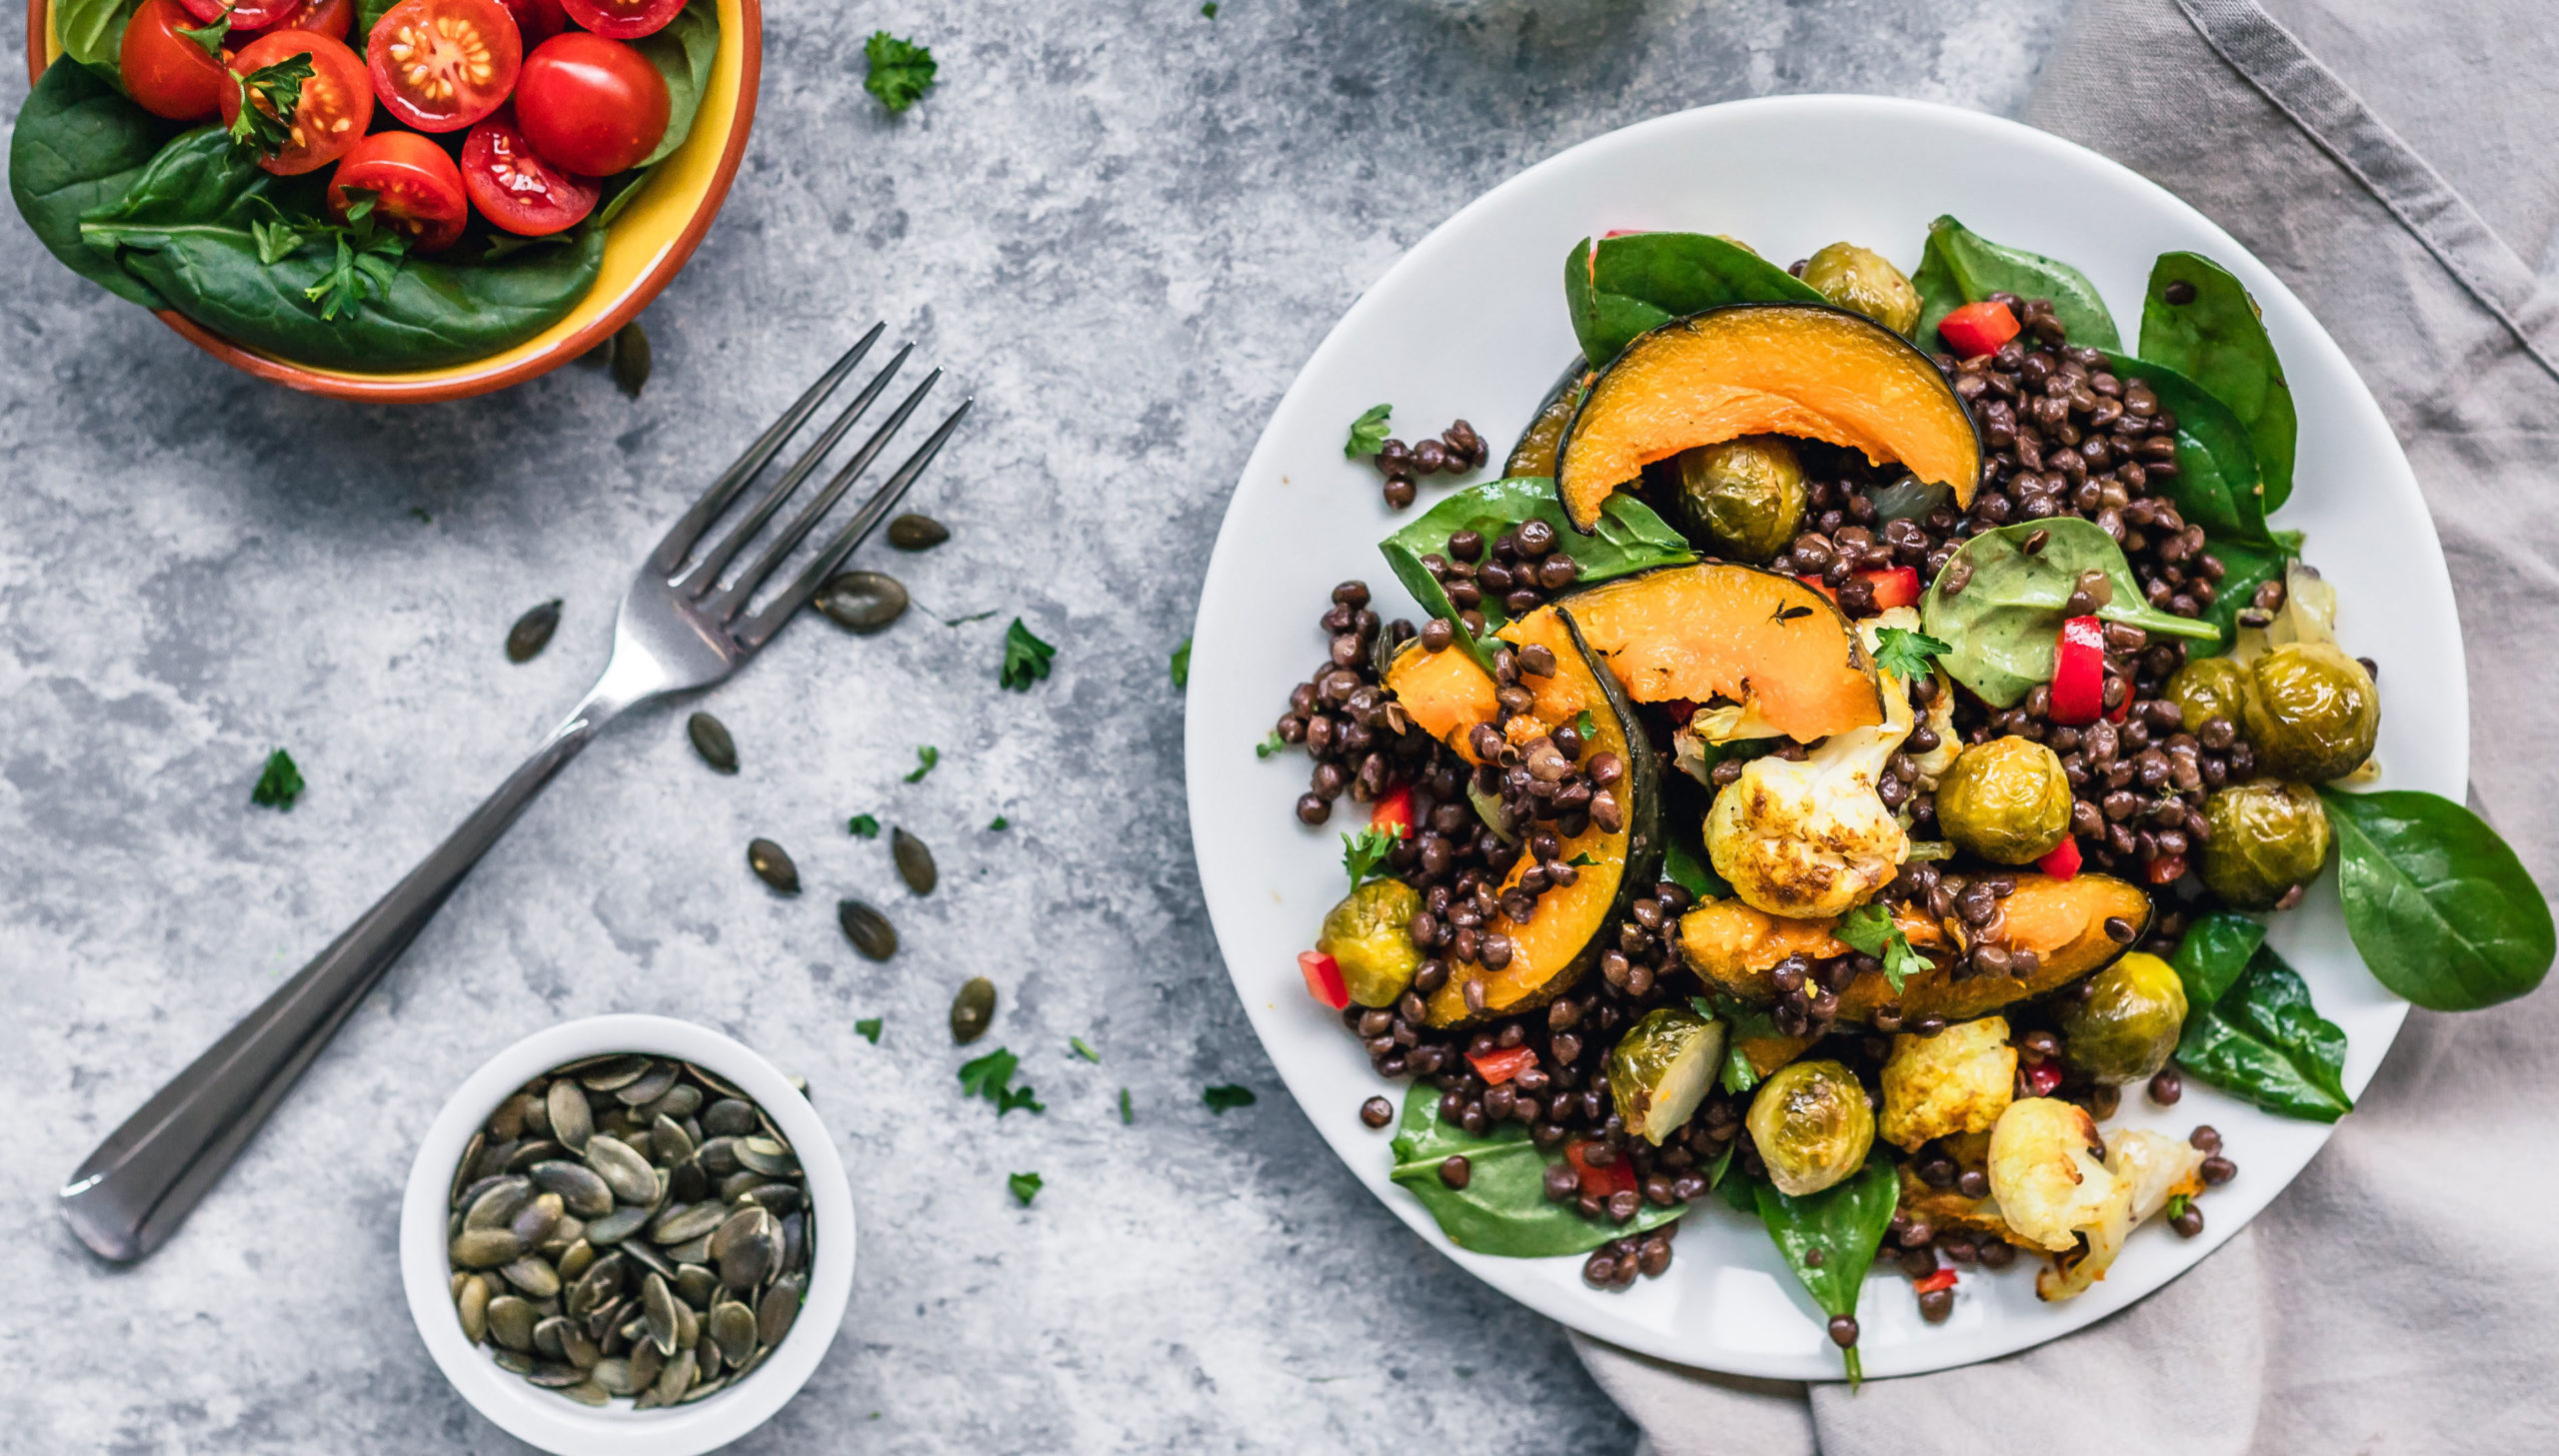 Five Nutrition and Healthy Eating Tips - Mass.Gov Blog